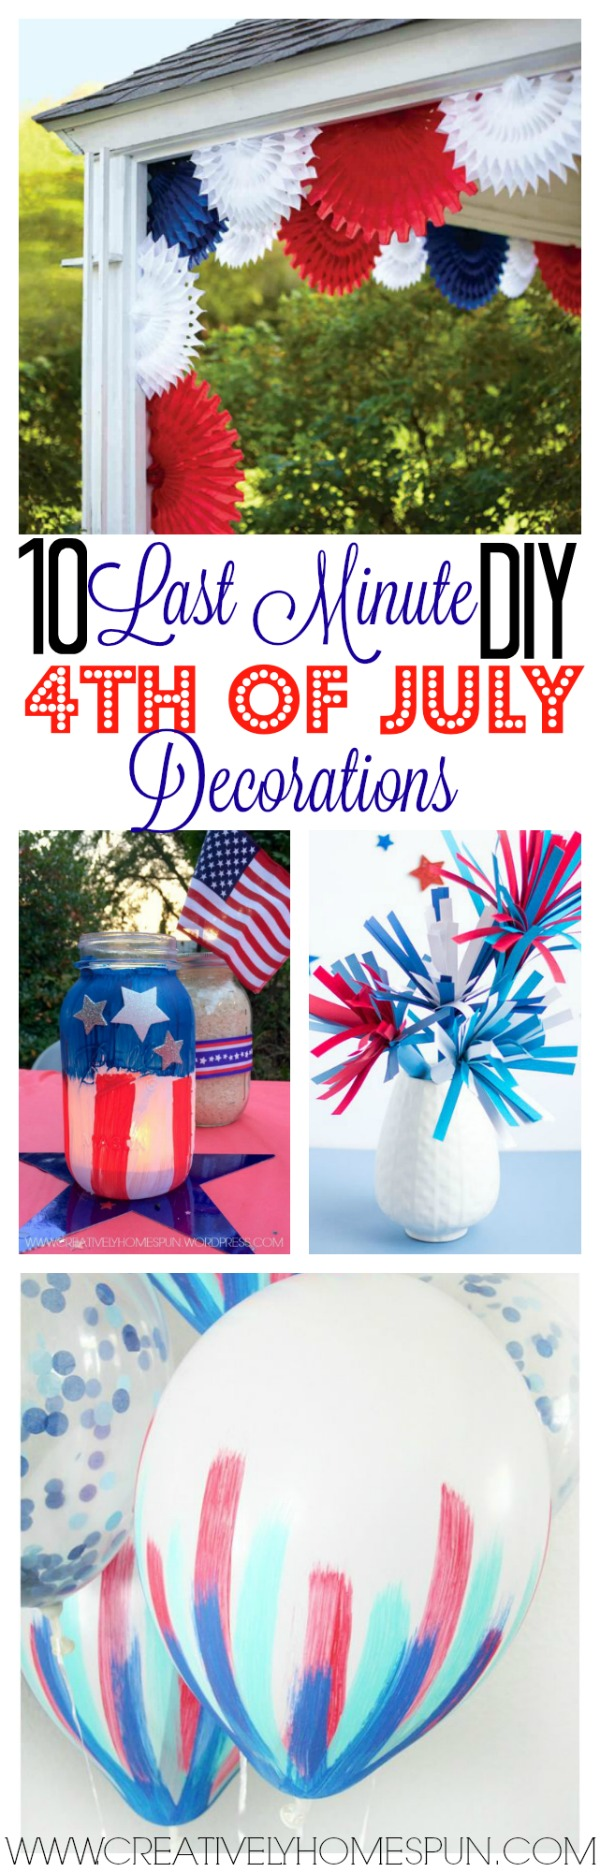 10 Last Minute DIY 4th of July Decorations #partydecor #4thofJuly #independanceday #diyparty